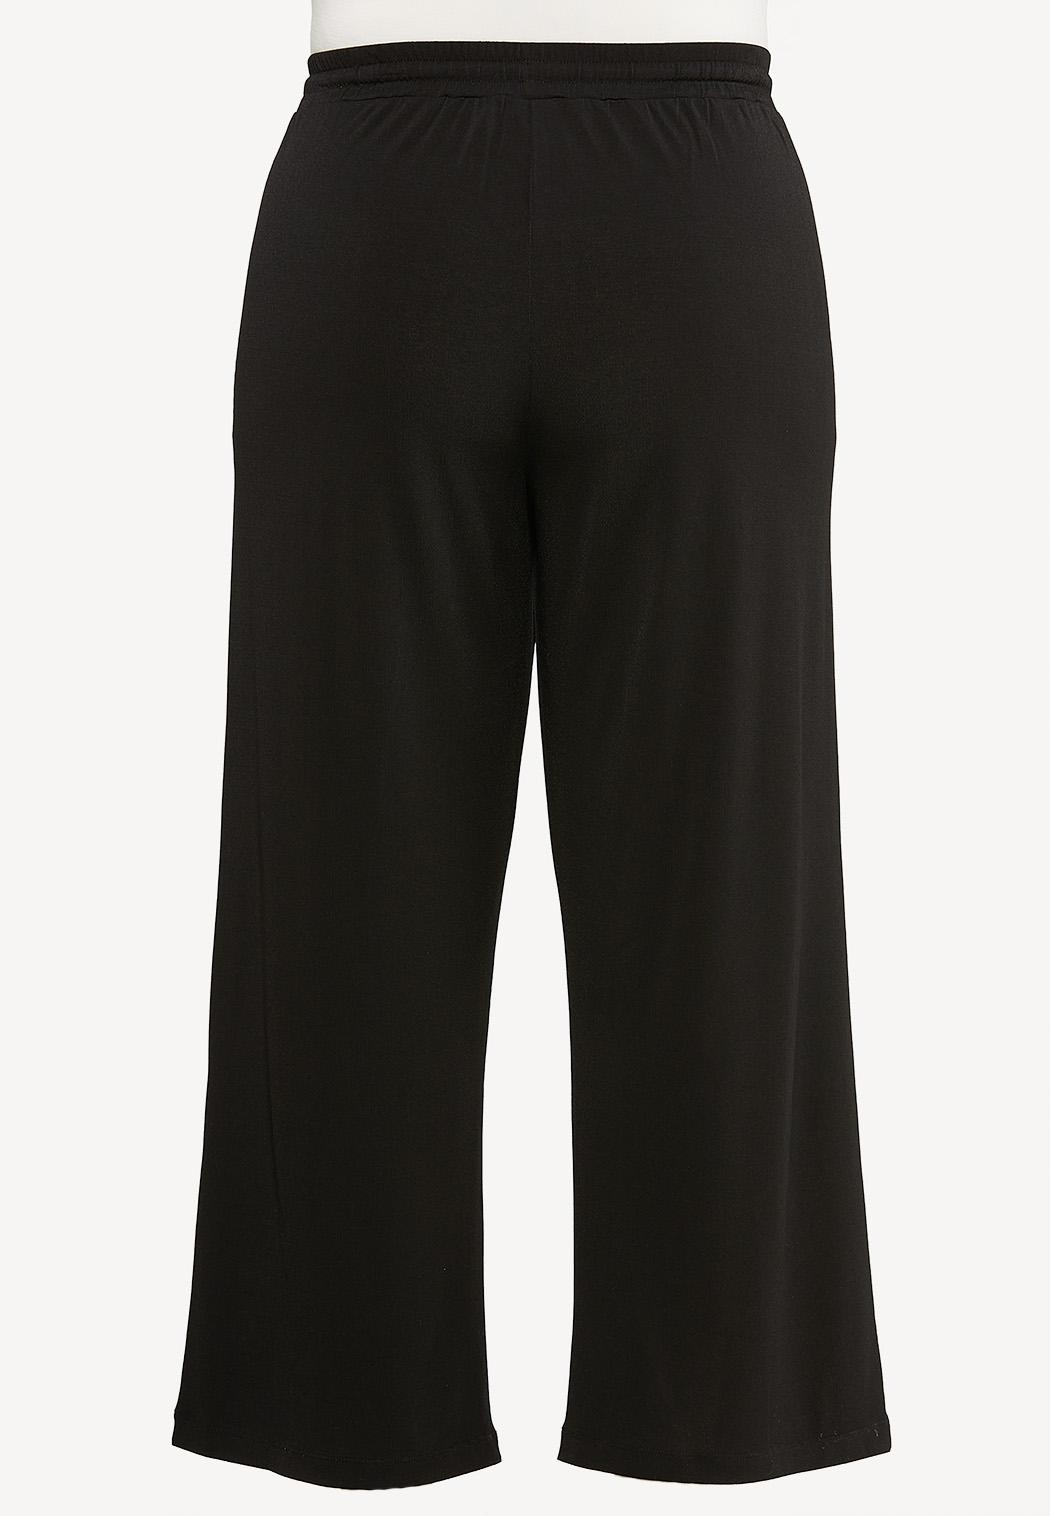 Plus Size Solid High-Rise Pants (Item #44497919)